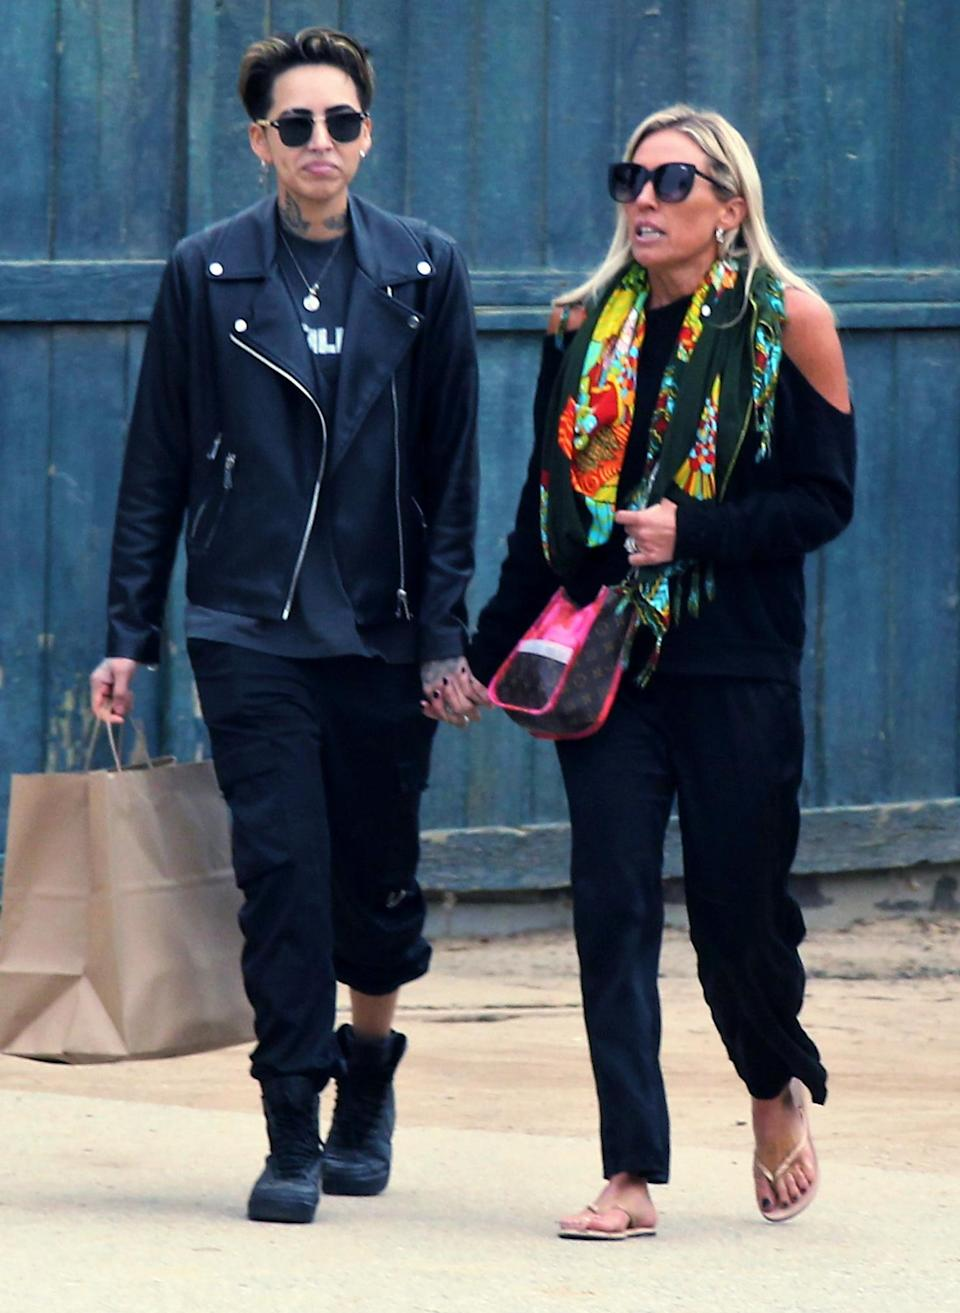 <p><em>Real Housewives of Orange County</em> star Braunwyn Windham-Burke walks hand-in-hand with her girlfriend during a lunch date in Palm Springs on Wednesday.</p>